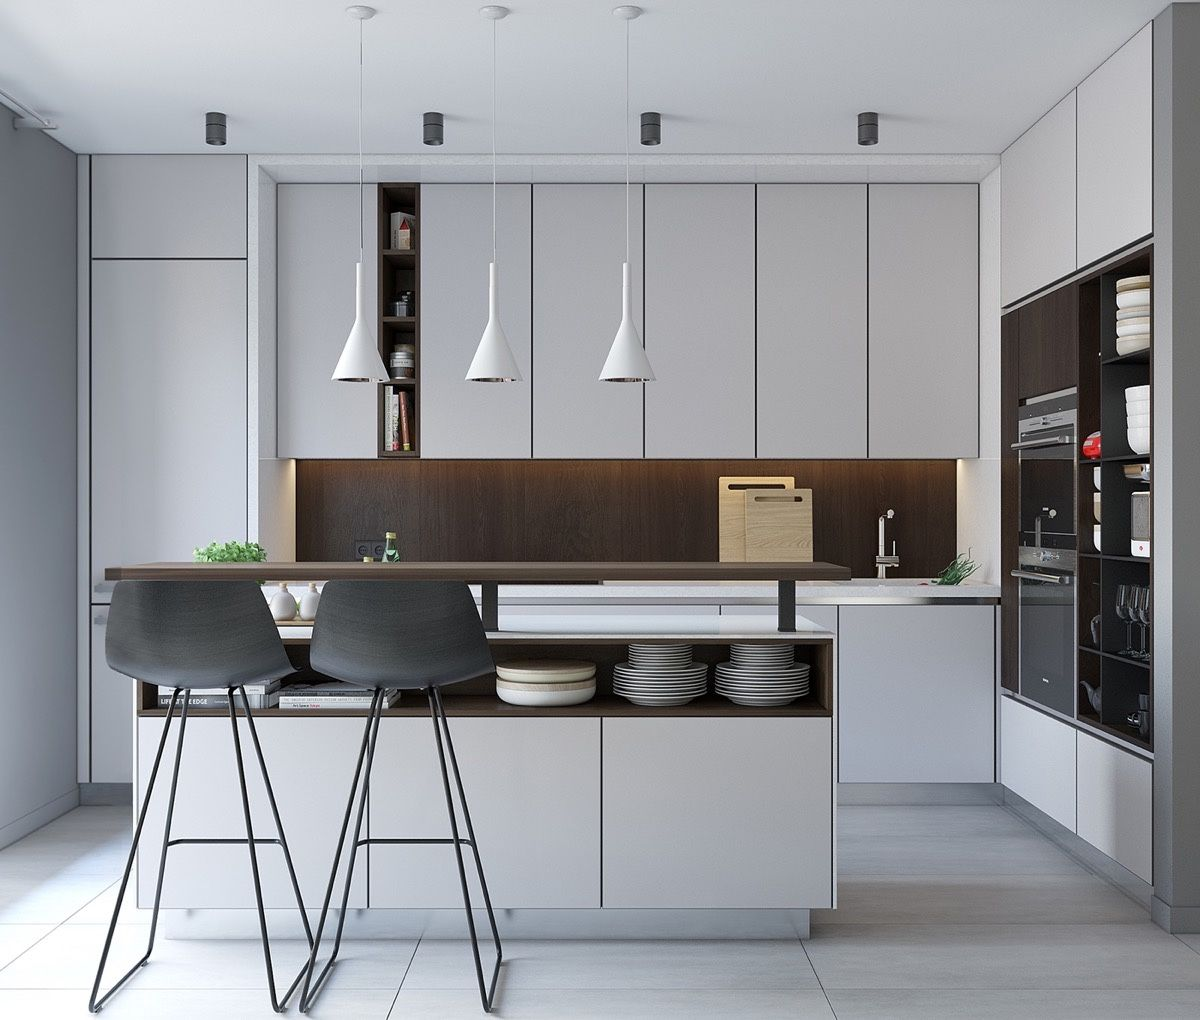 10 Modern Kitchen Designs That Use Unconventional Geometry